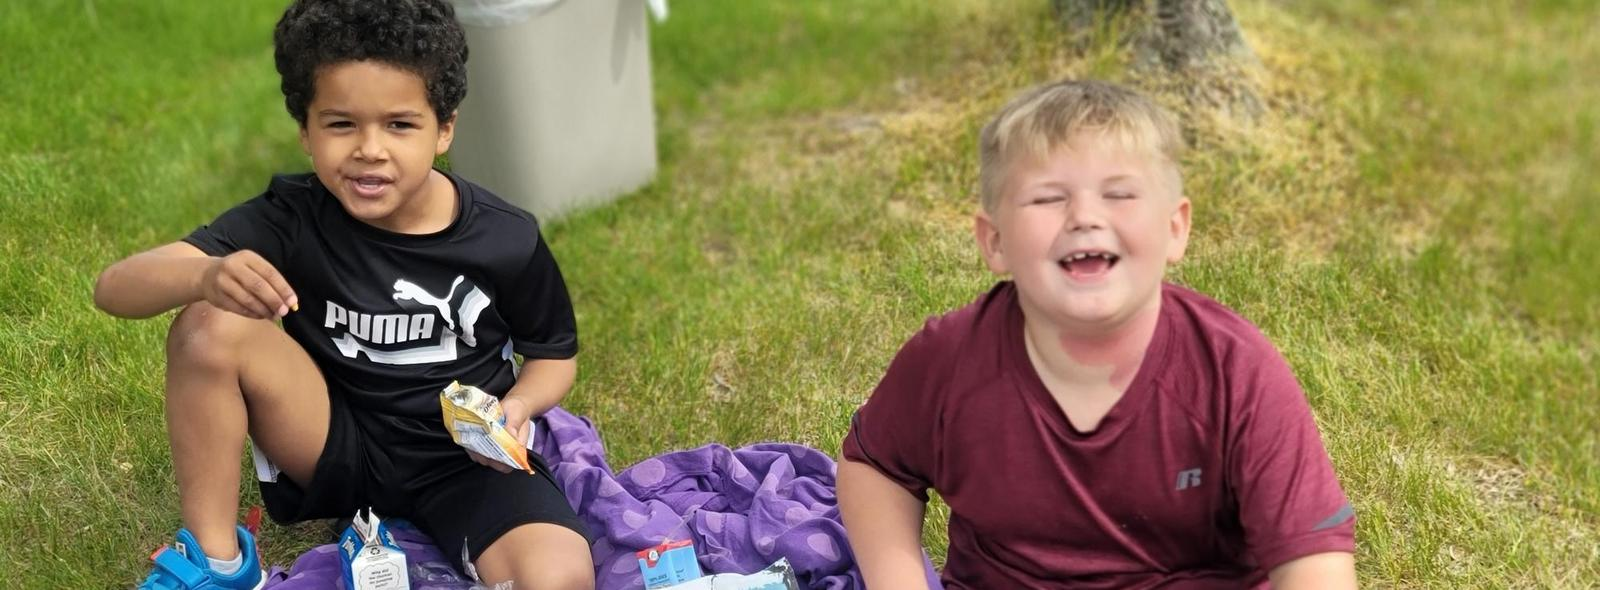 two kids eating lunch outside laughing